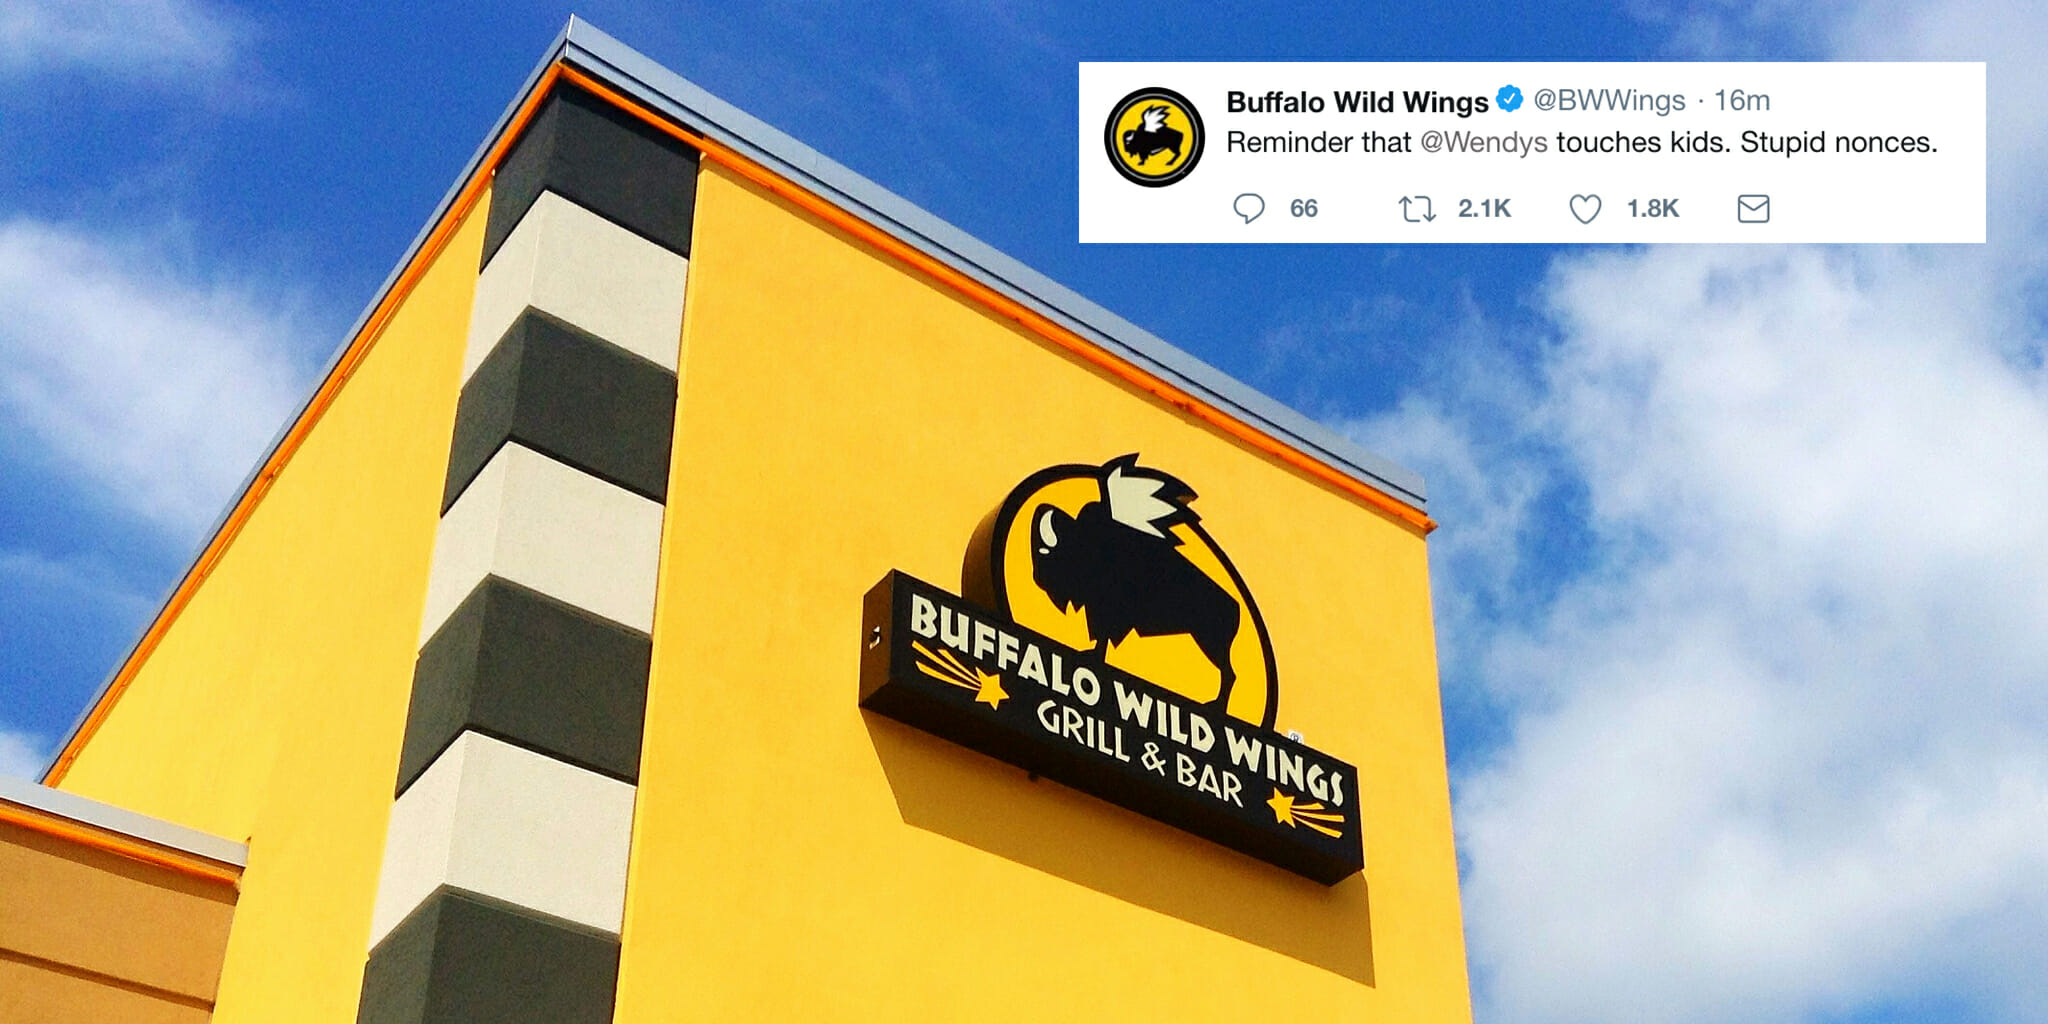 Buffalo Wild Wings Twitter Hacked To Post Racist Sexual Messages